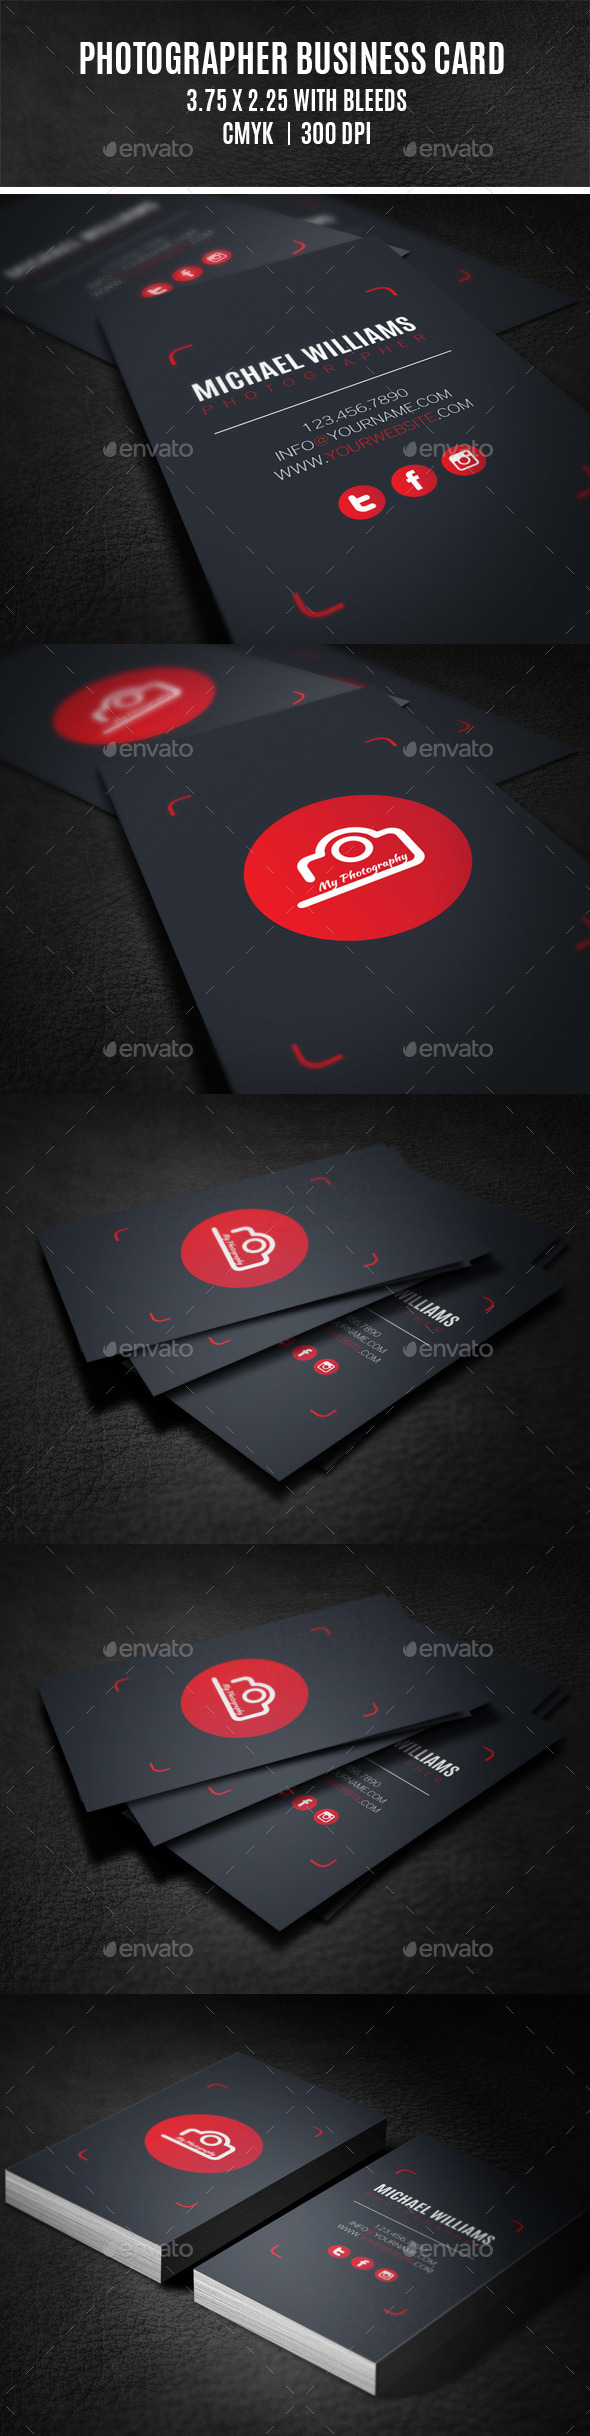 GraphicRiver Photographer Business Card 9296111